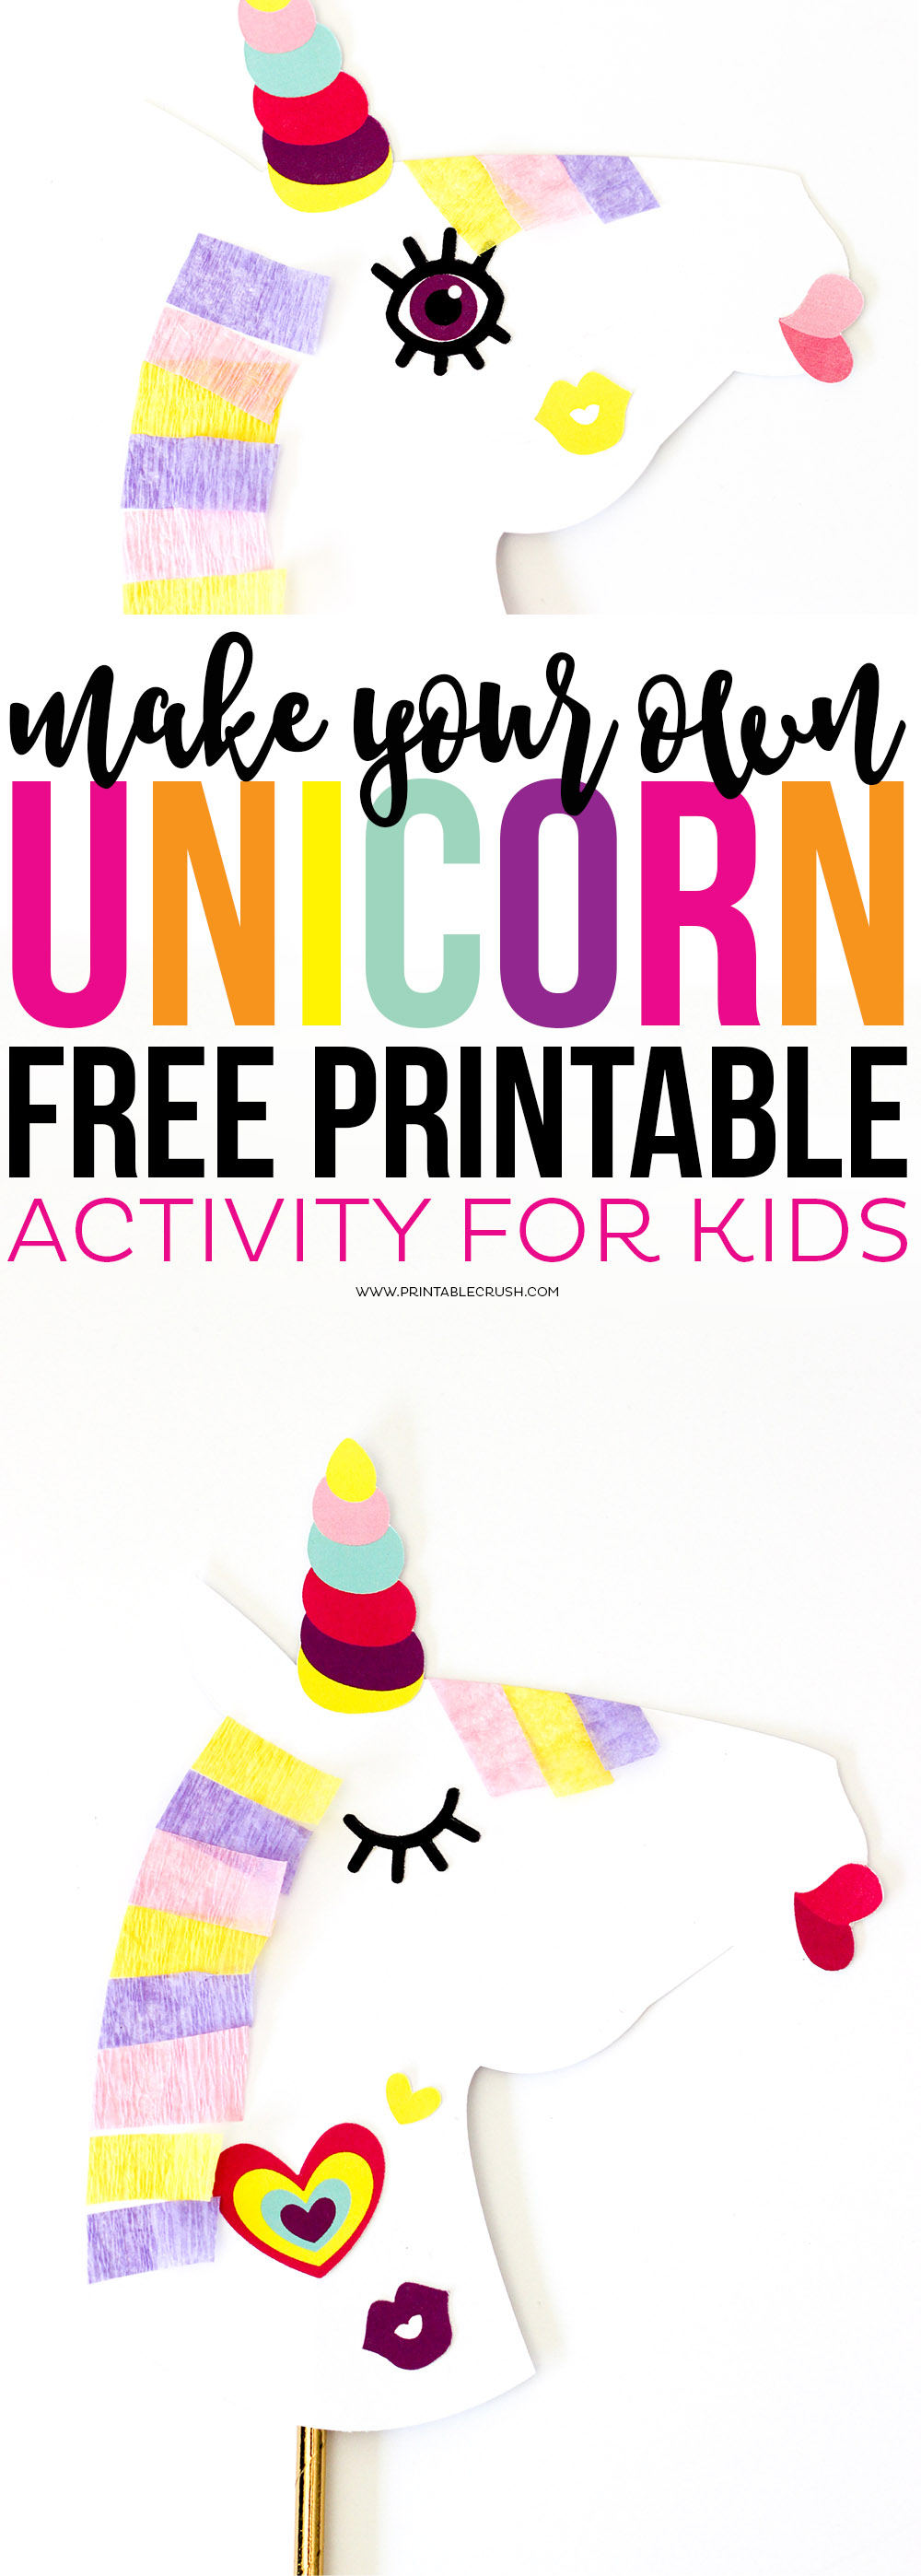 Make Your Own Unicorn FREE Printable is the perfect activity for kids that are home all day for Spring or Summer Break! Hardly any mess and they get to be creative!